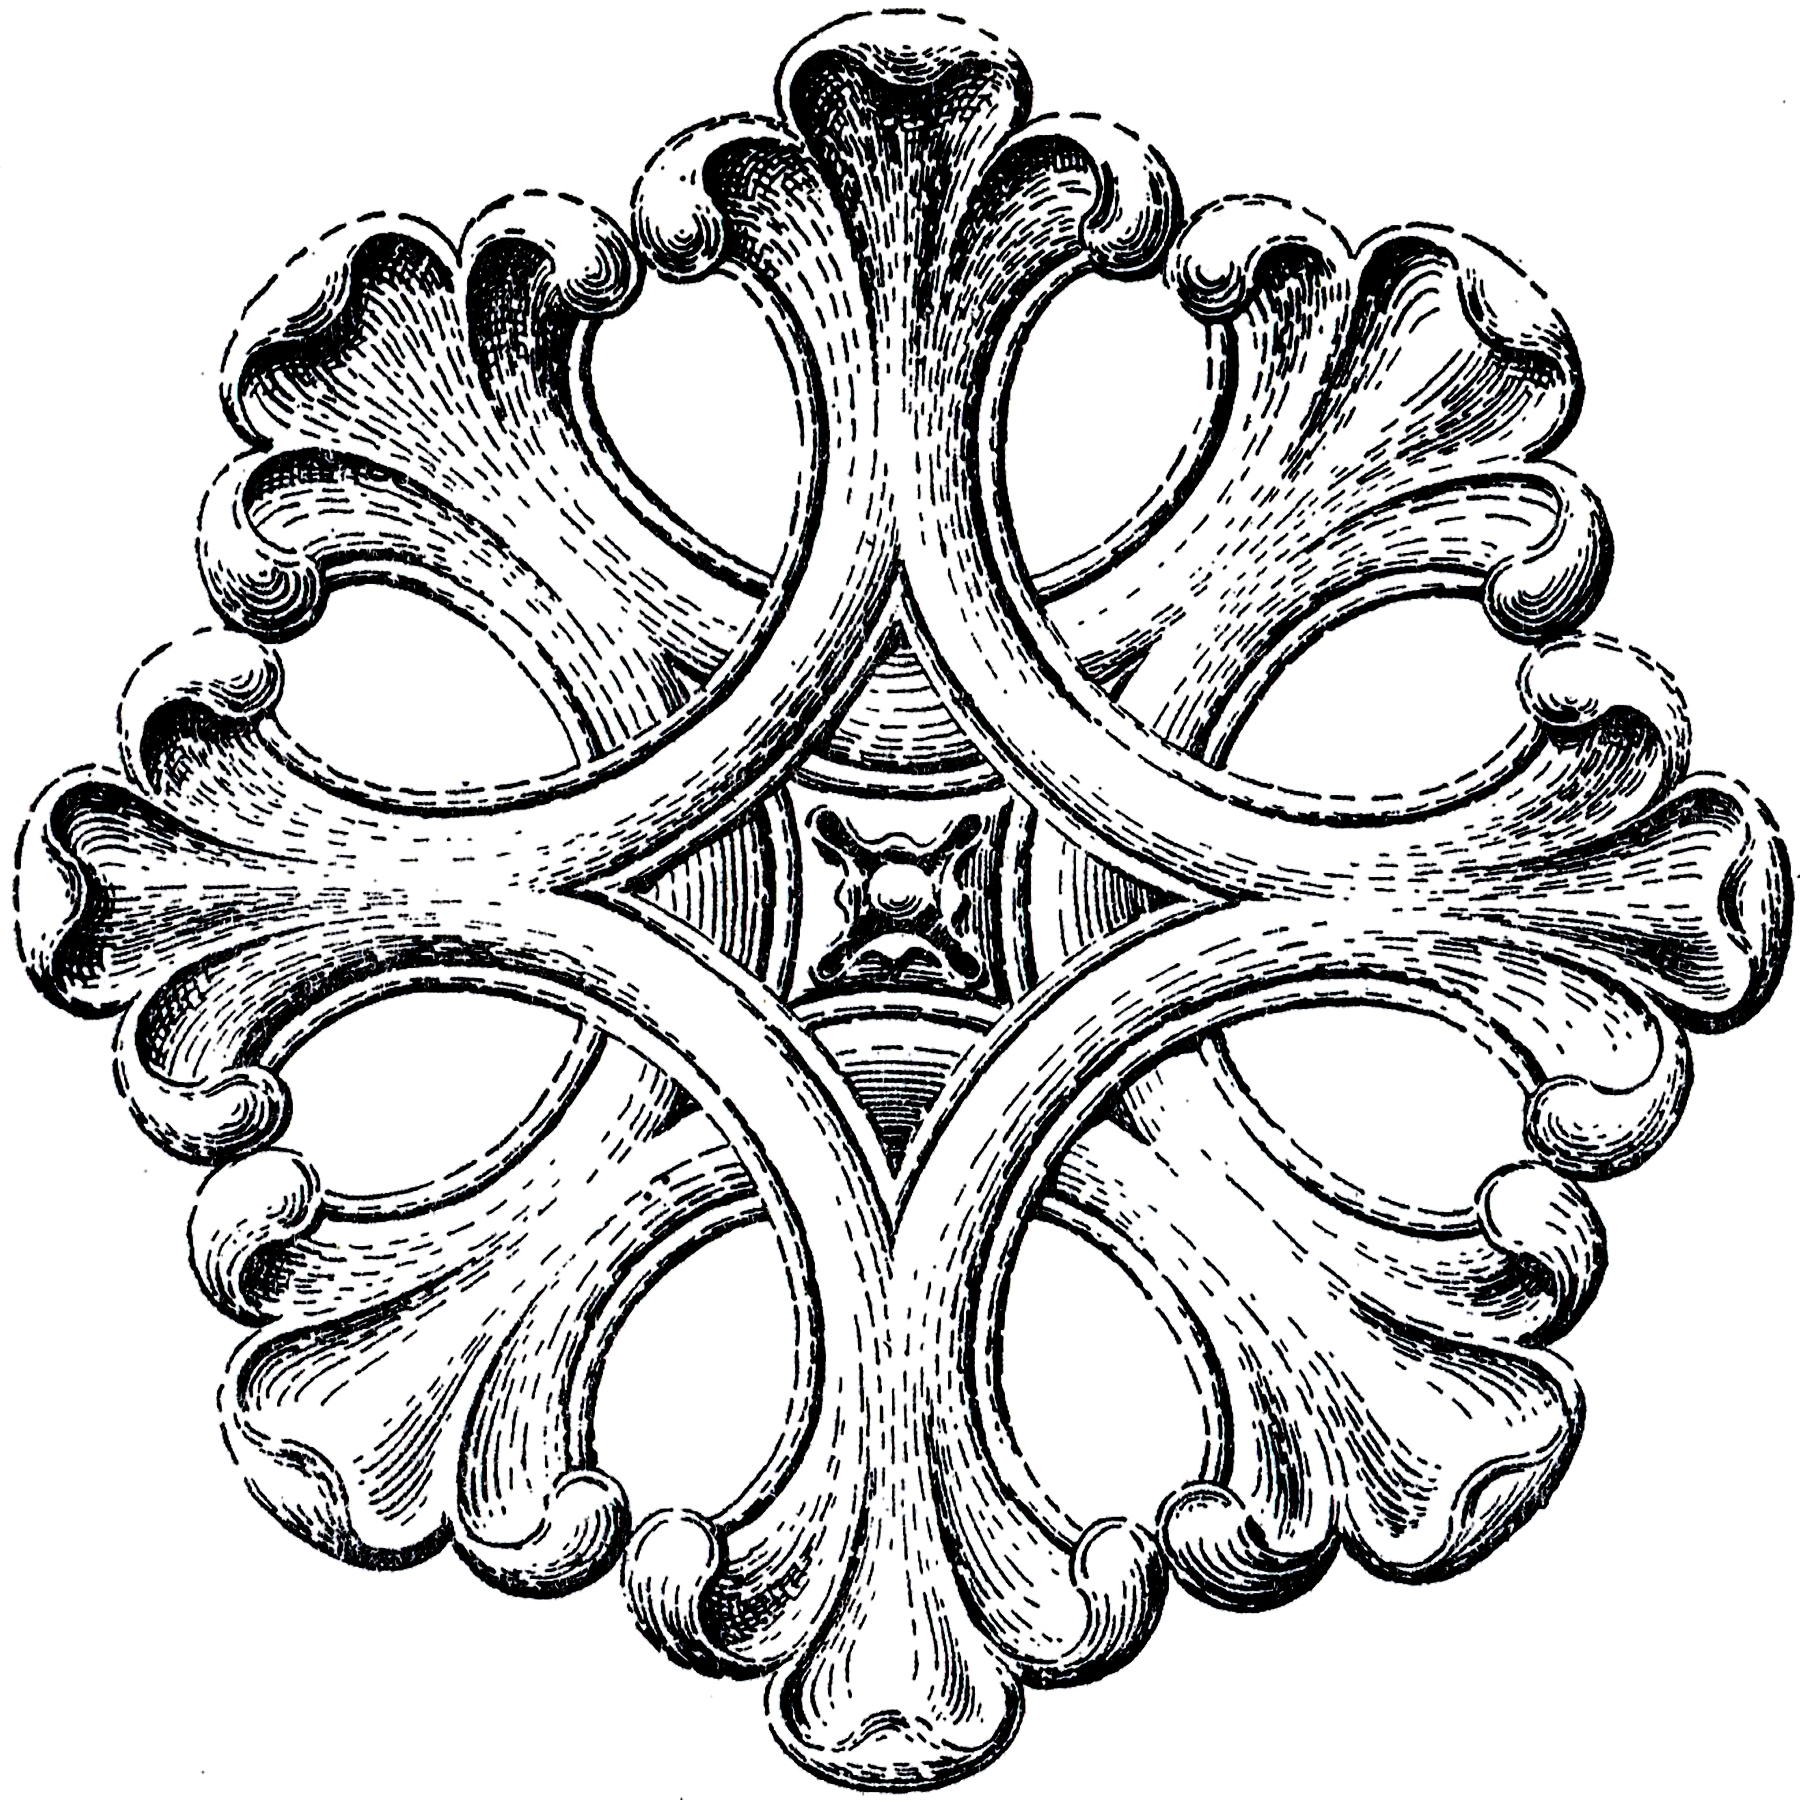 Architectural Rosette Ornament Image